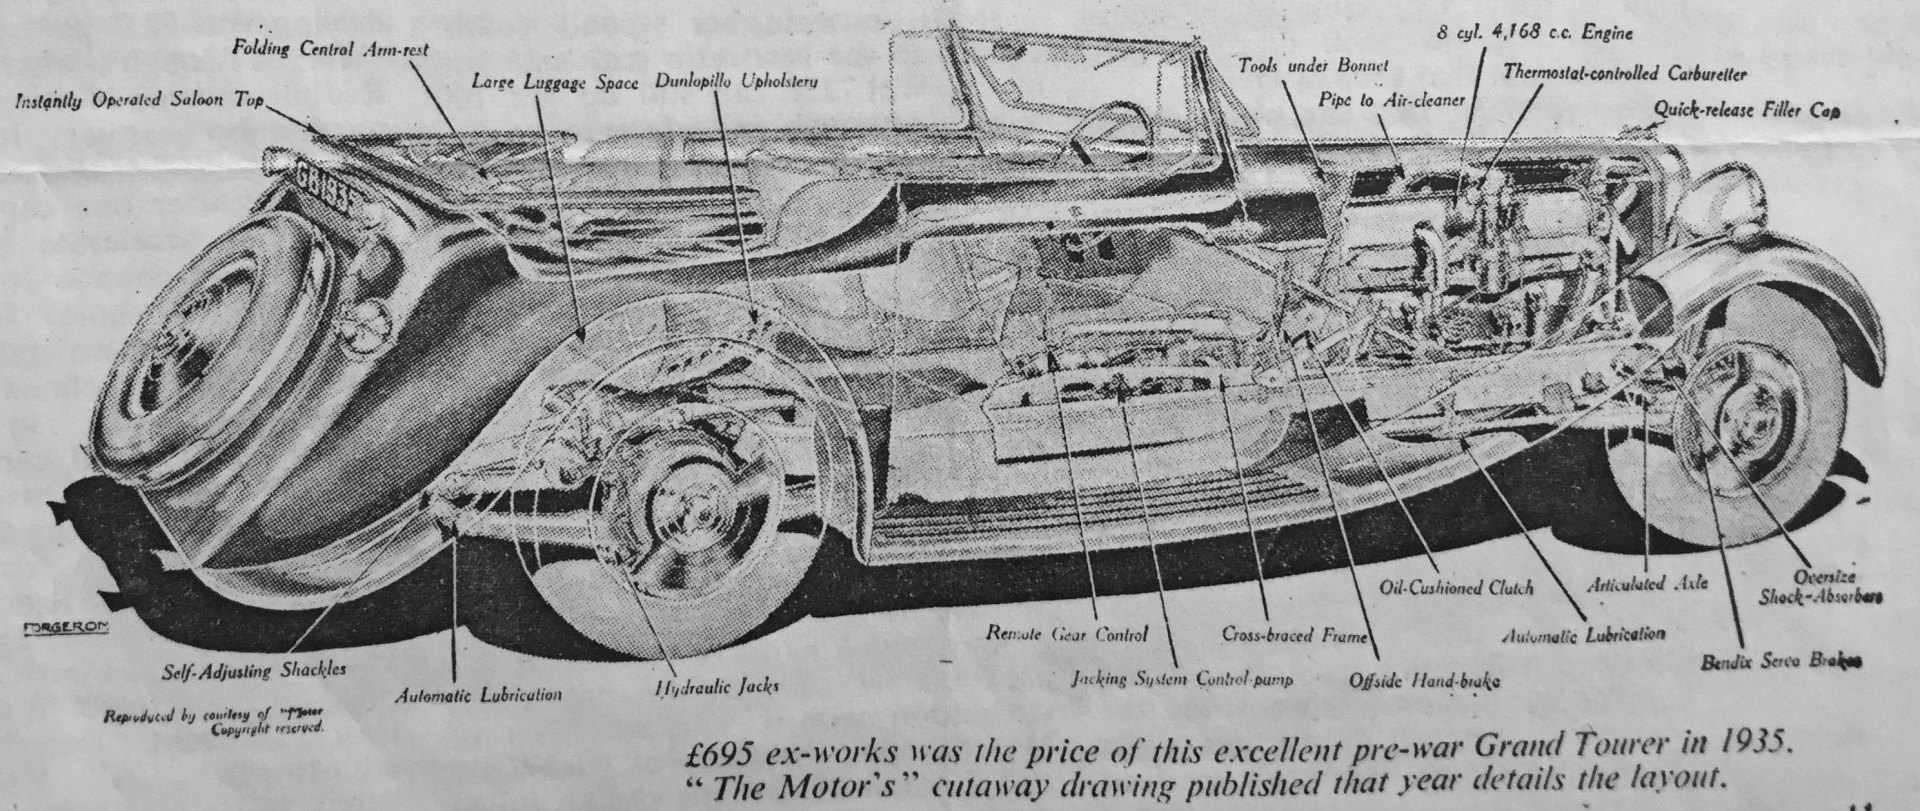 'The Motor's' cutaway drawing of the Brough Superior.